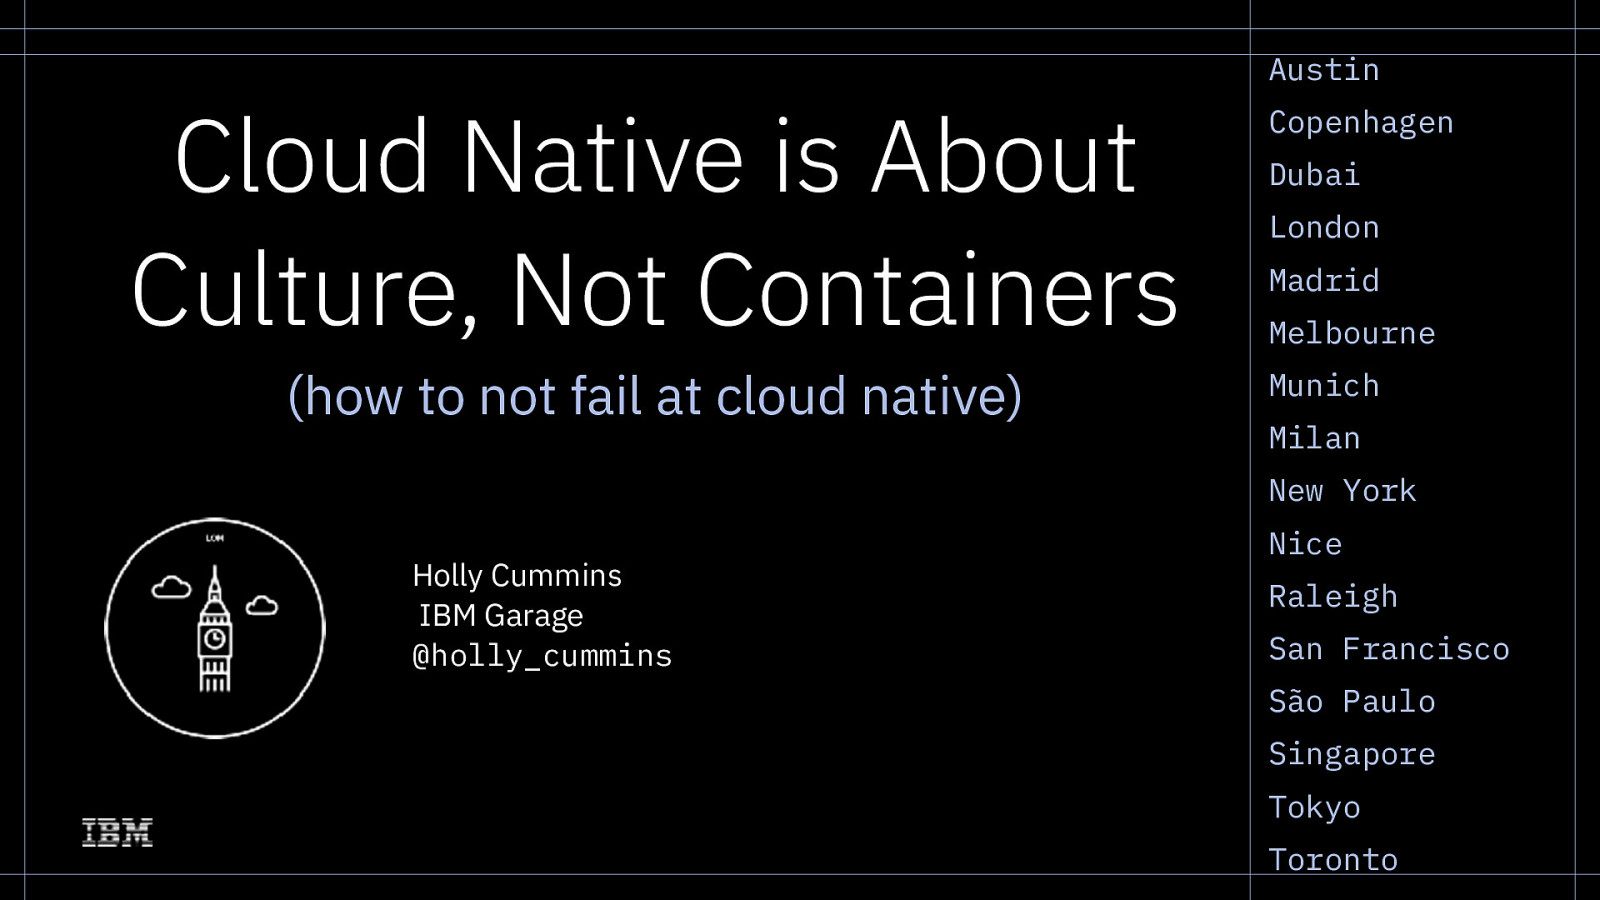 Cloud Native is about Culture, not Containers